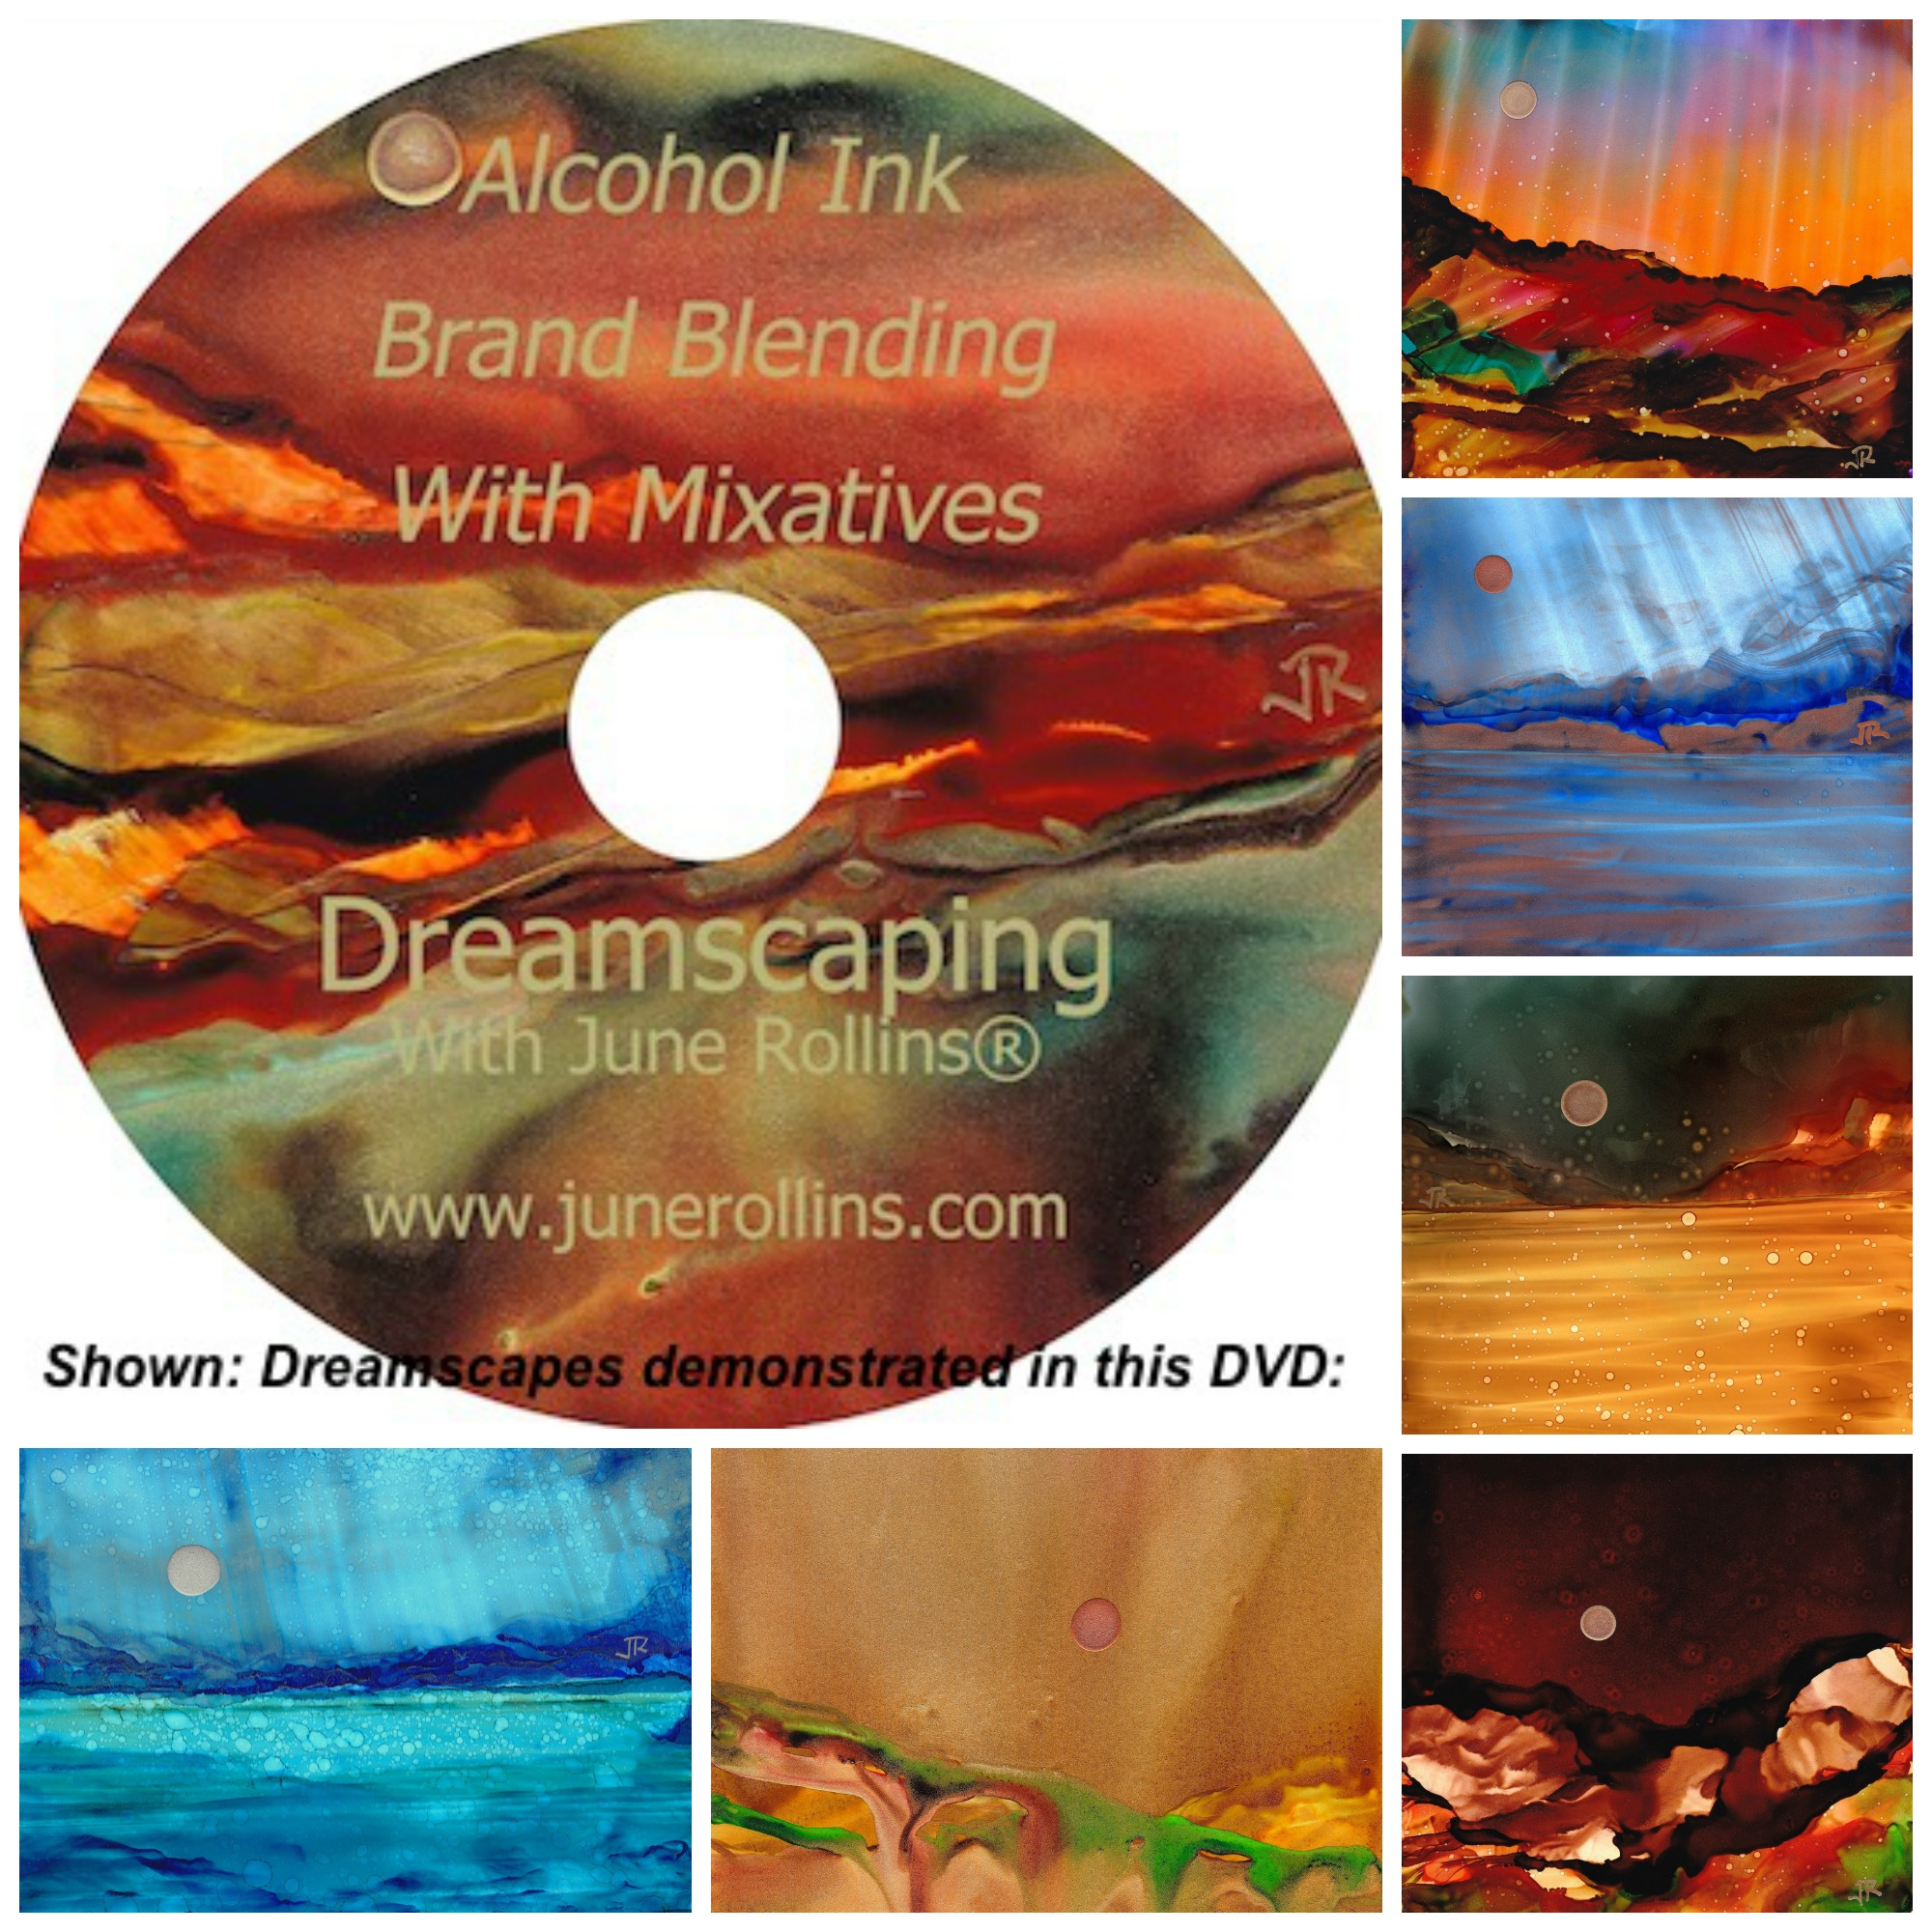 Dreamscaping With June Rollins™ – June Rollins ART